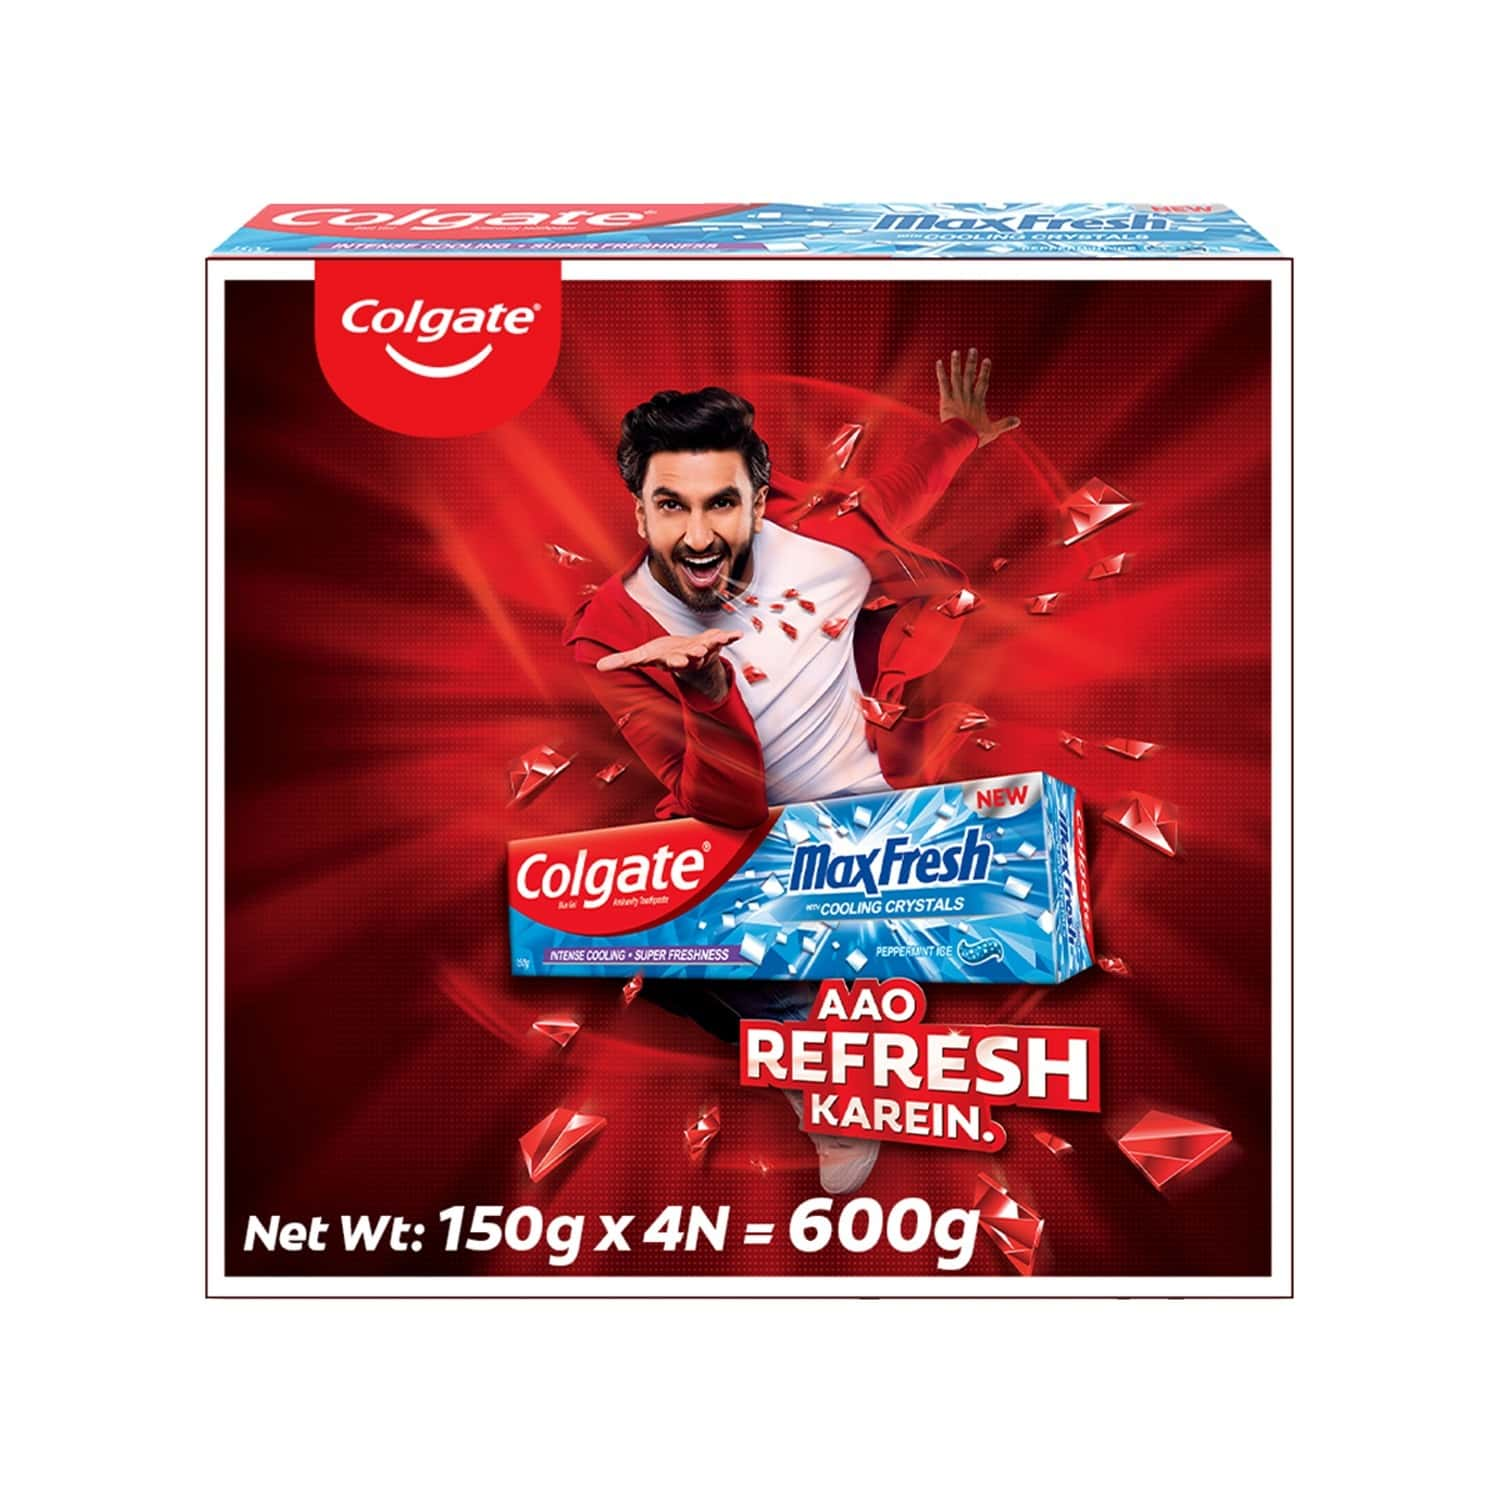 Colgate Maxfresh Toothpaste, Blue Gel Paste With Menthol For Super Fresh Breath, 150g X 4 (peppermint Ice, Saver Pack) - 600g